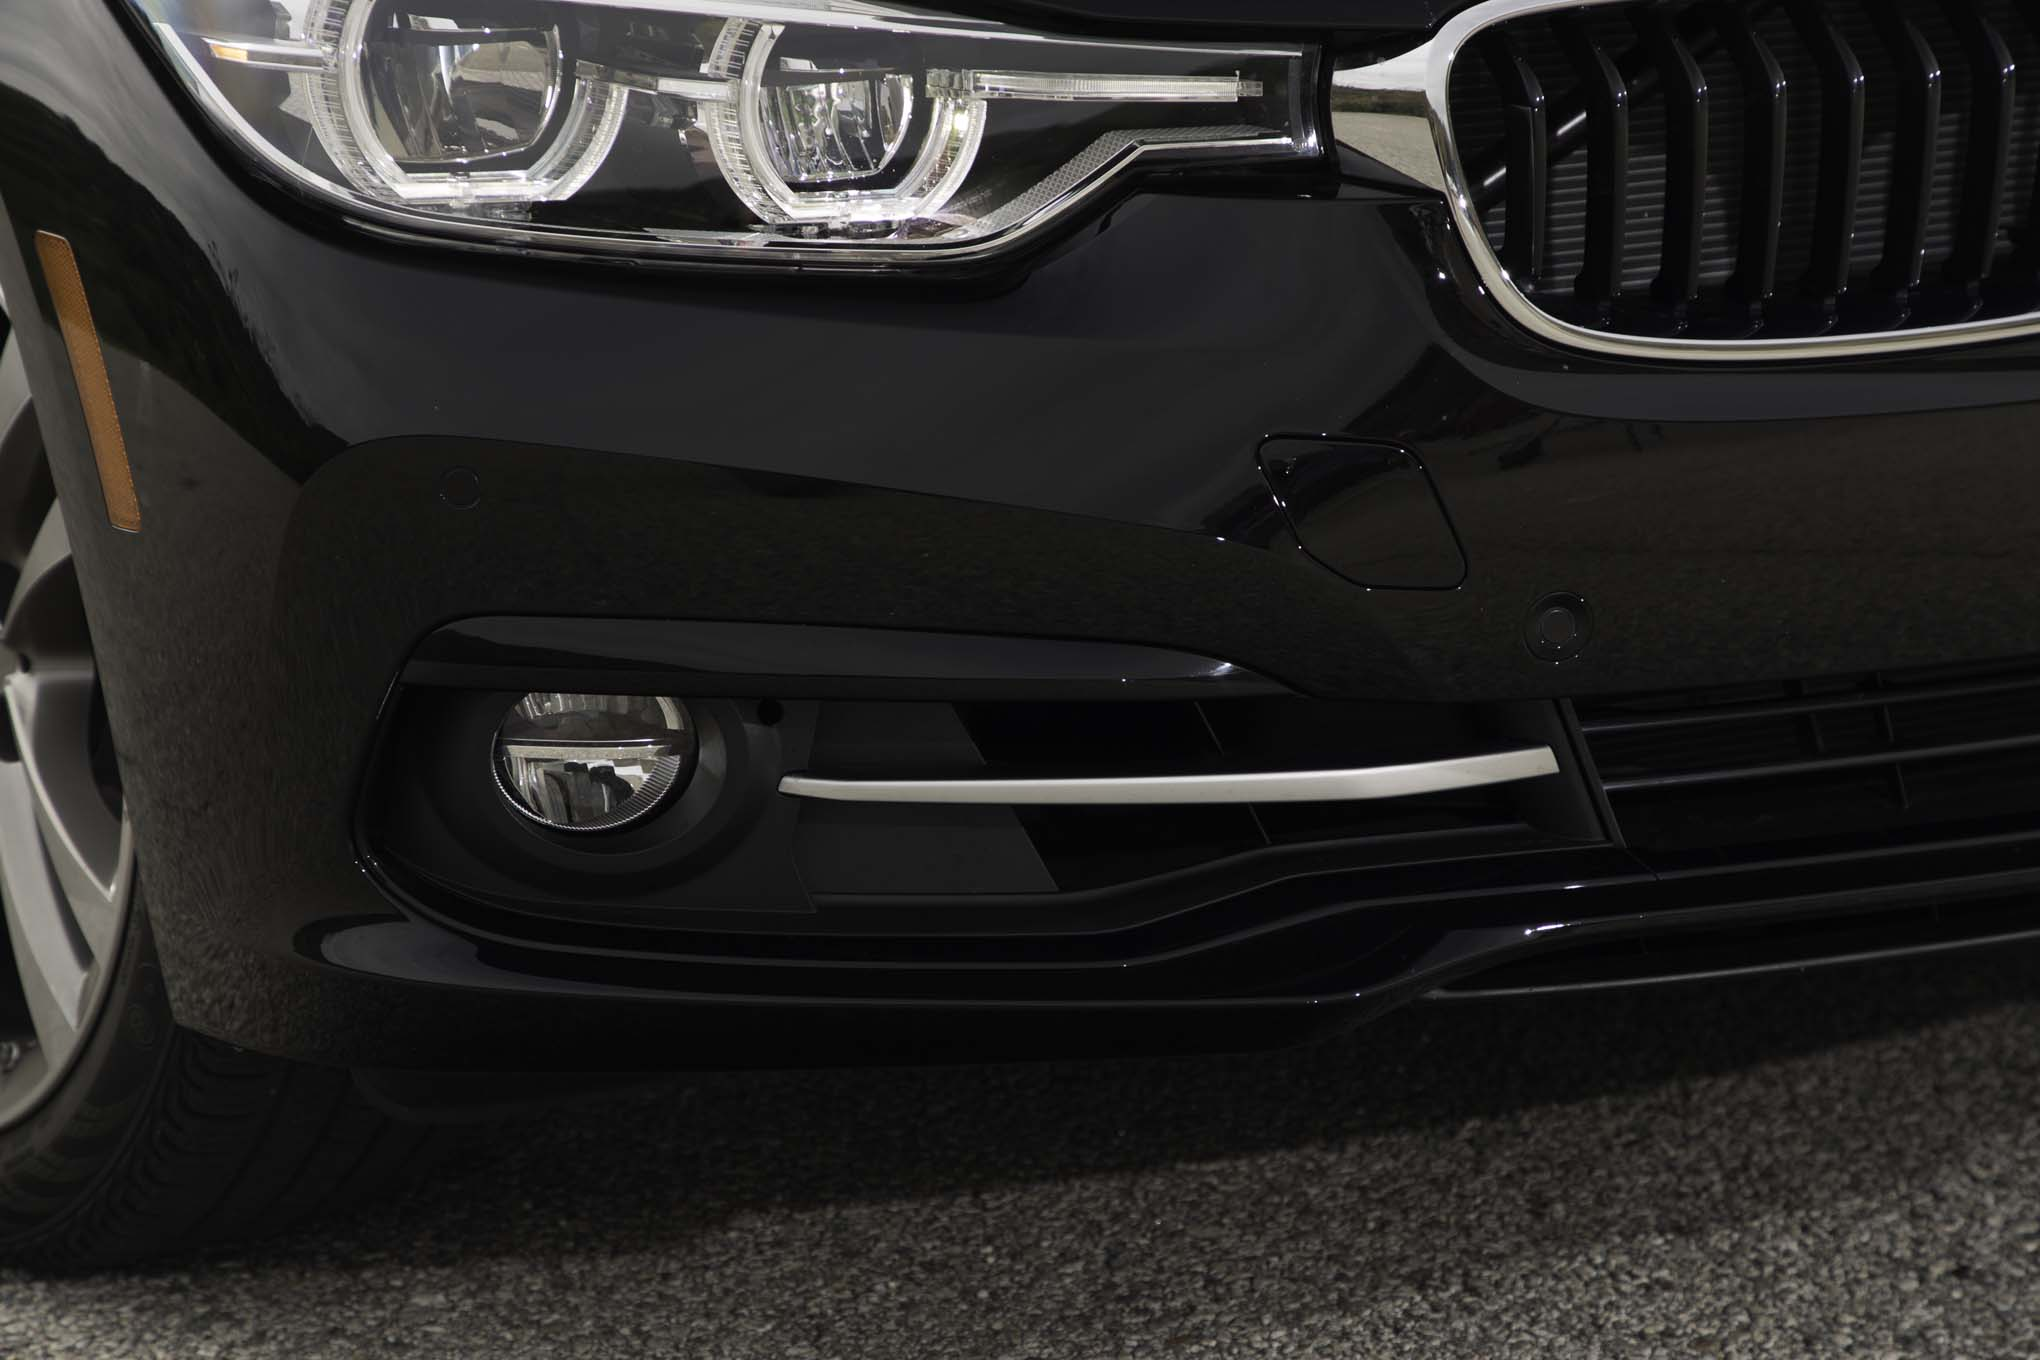 2017 BMW 330i Sedan Exterior View Front Bumper (View 44 of 59)